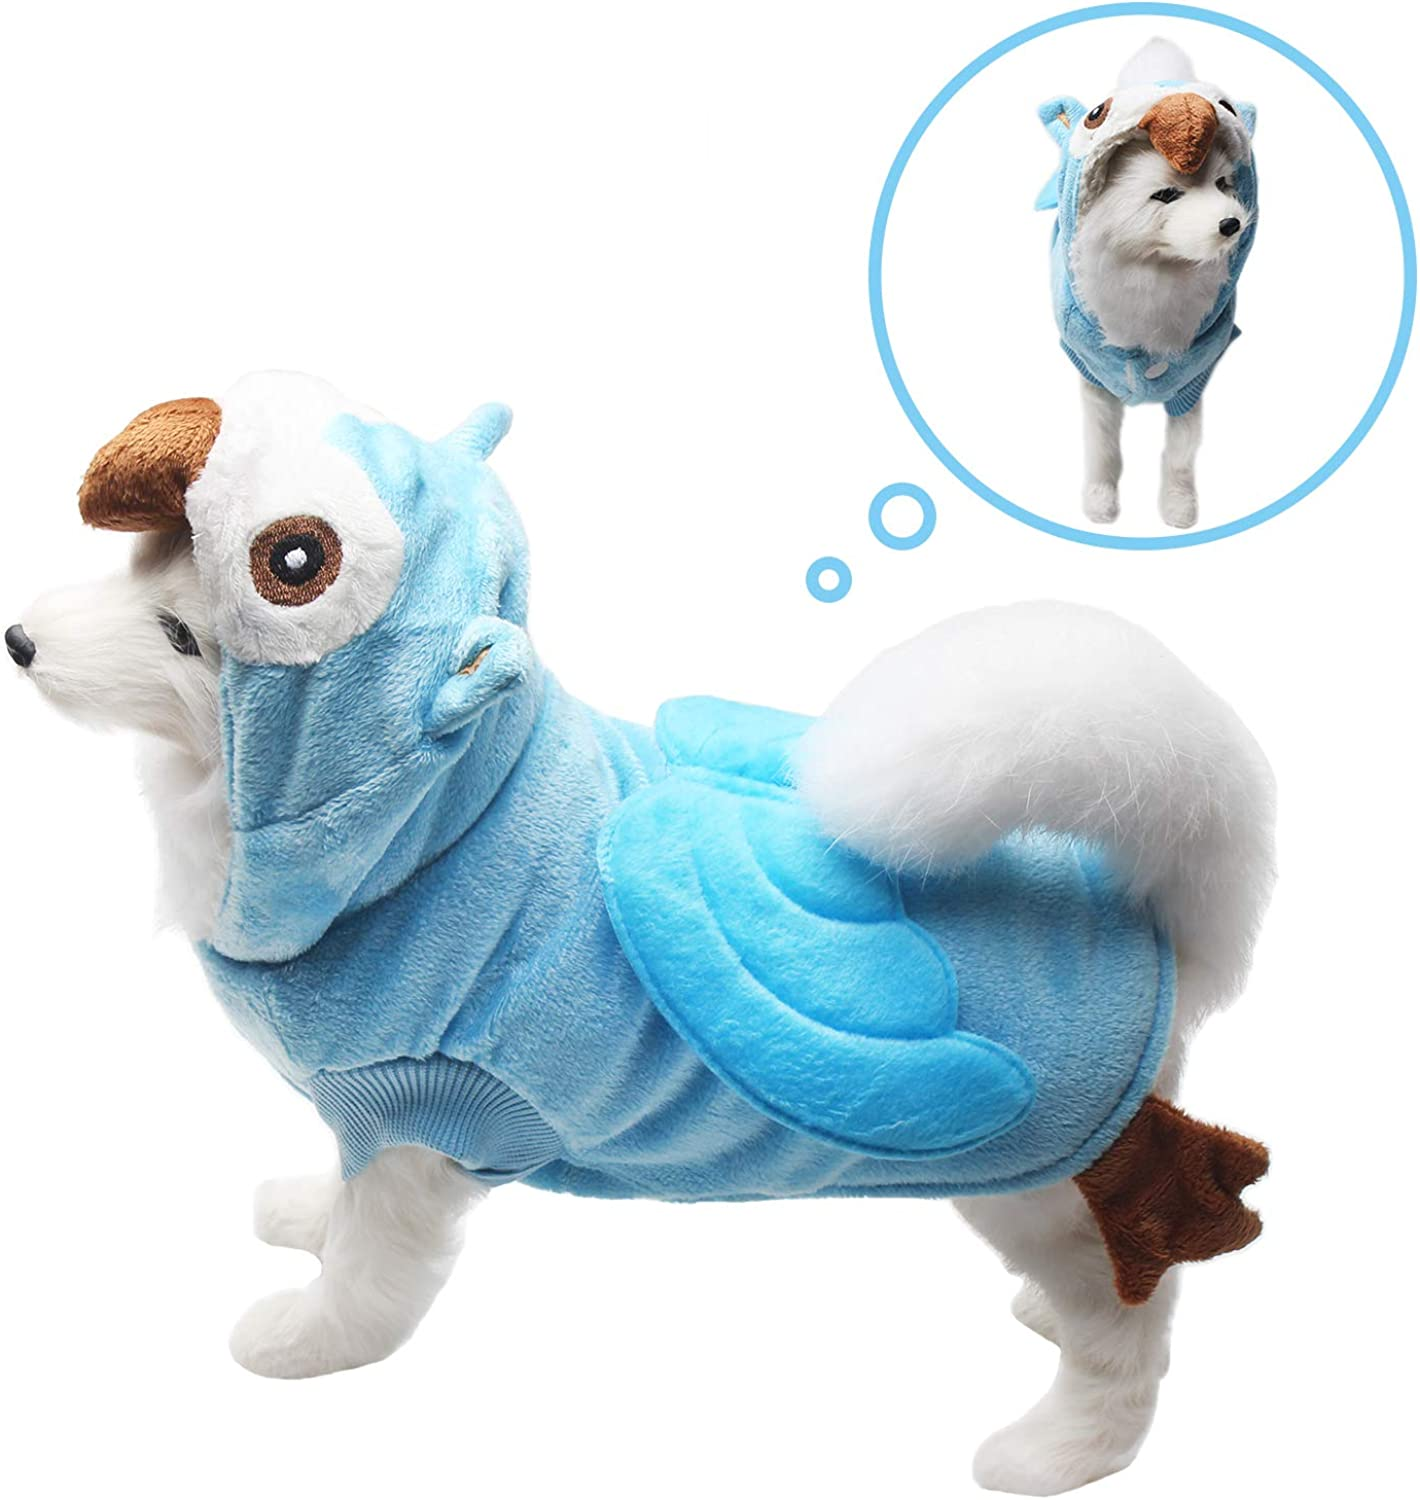 Neodot Dog Cosplay Pet Owl Shape Costume Halloween Dog Outfits Dog Pajamas Hoodie Cold Weather Coat for Autumn to Winter (XL, bluee)